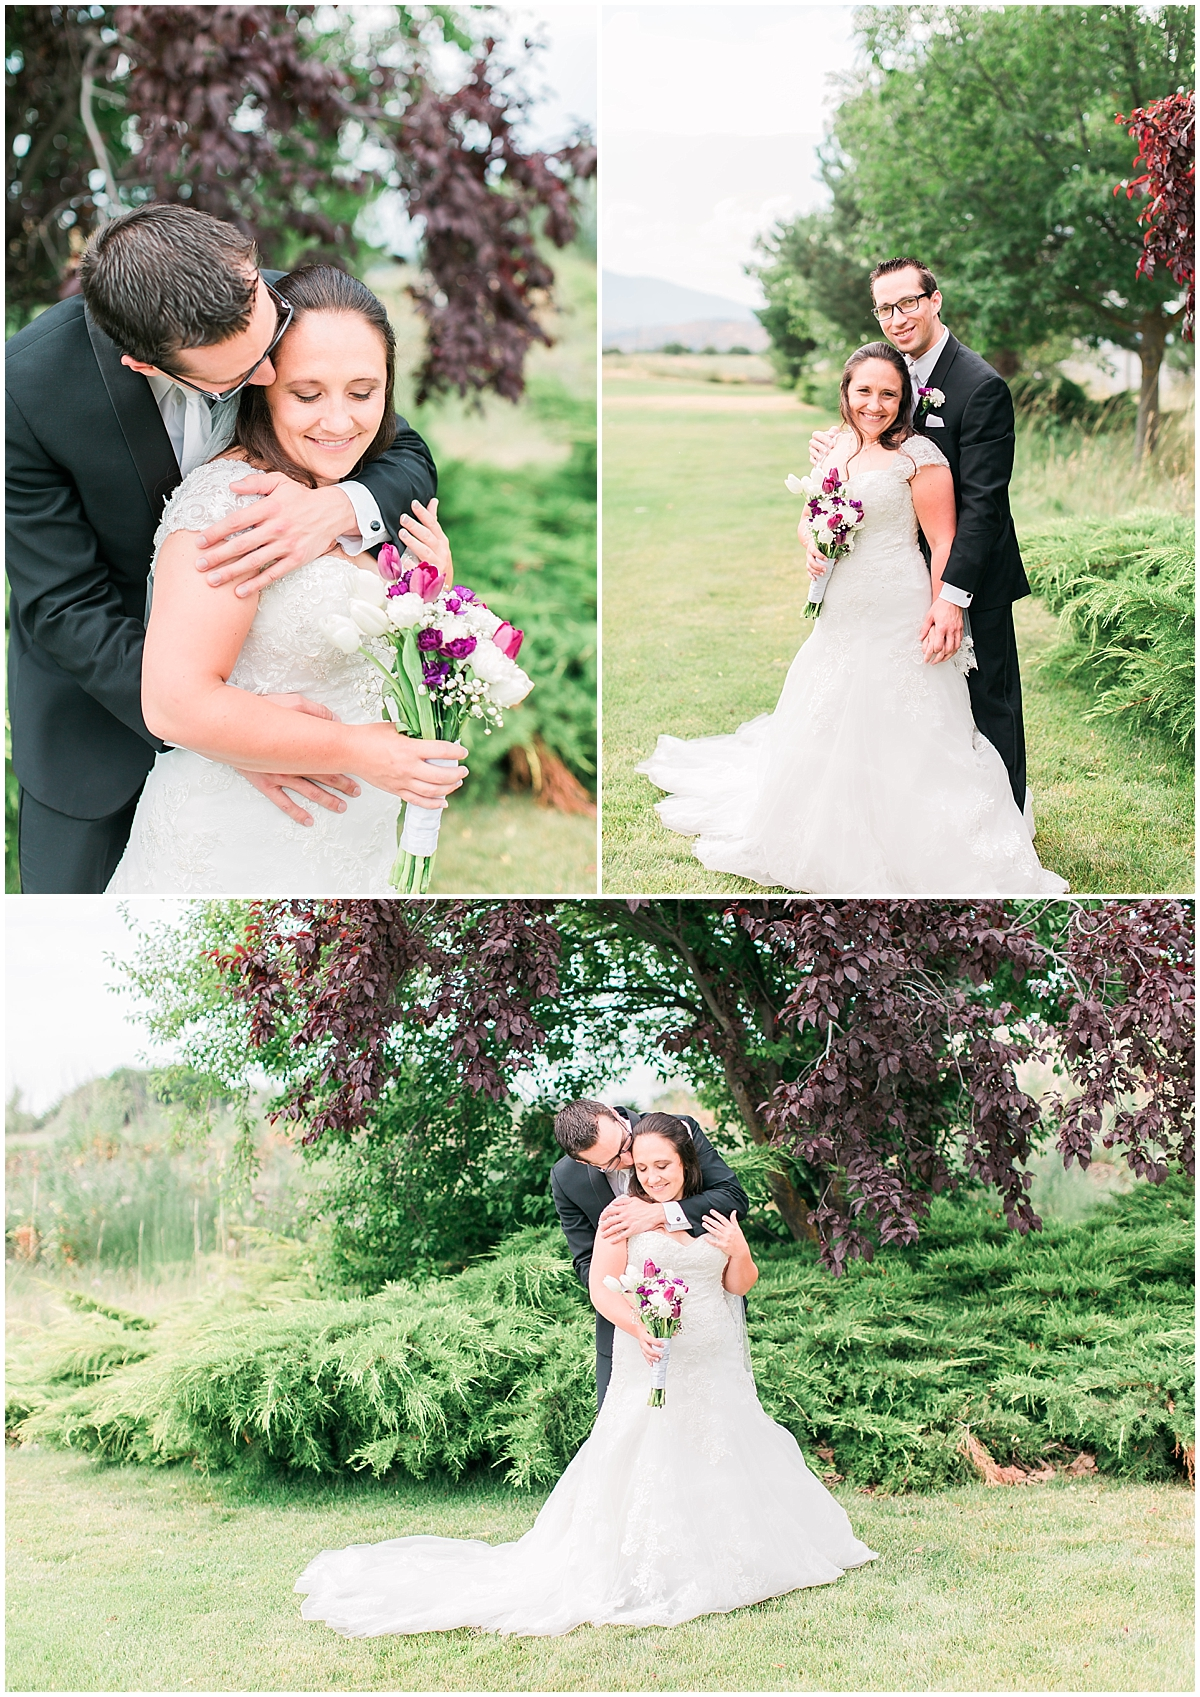 Bridal and Groom Poses